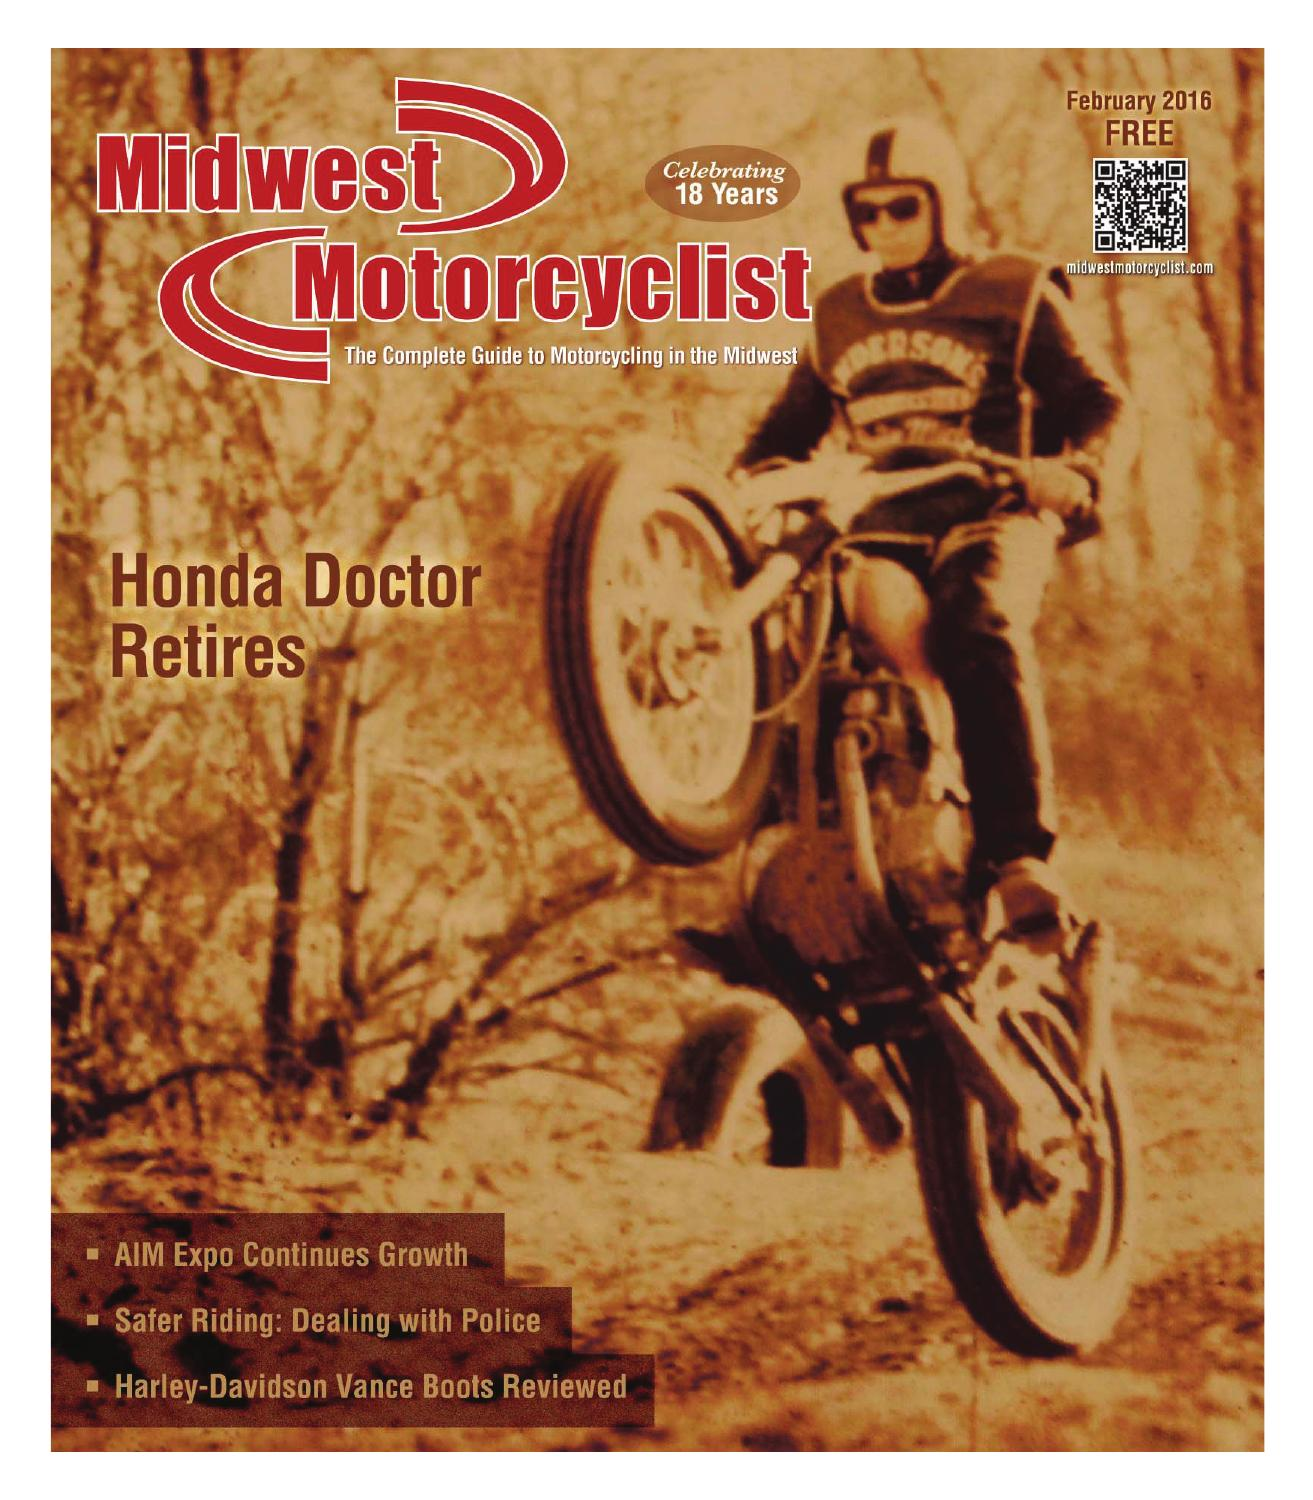 Midwest Motorcyclist(TM), February 2016 issue by Midwest